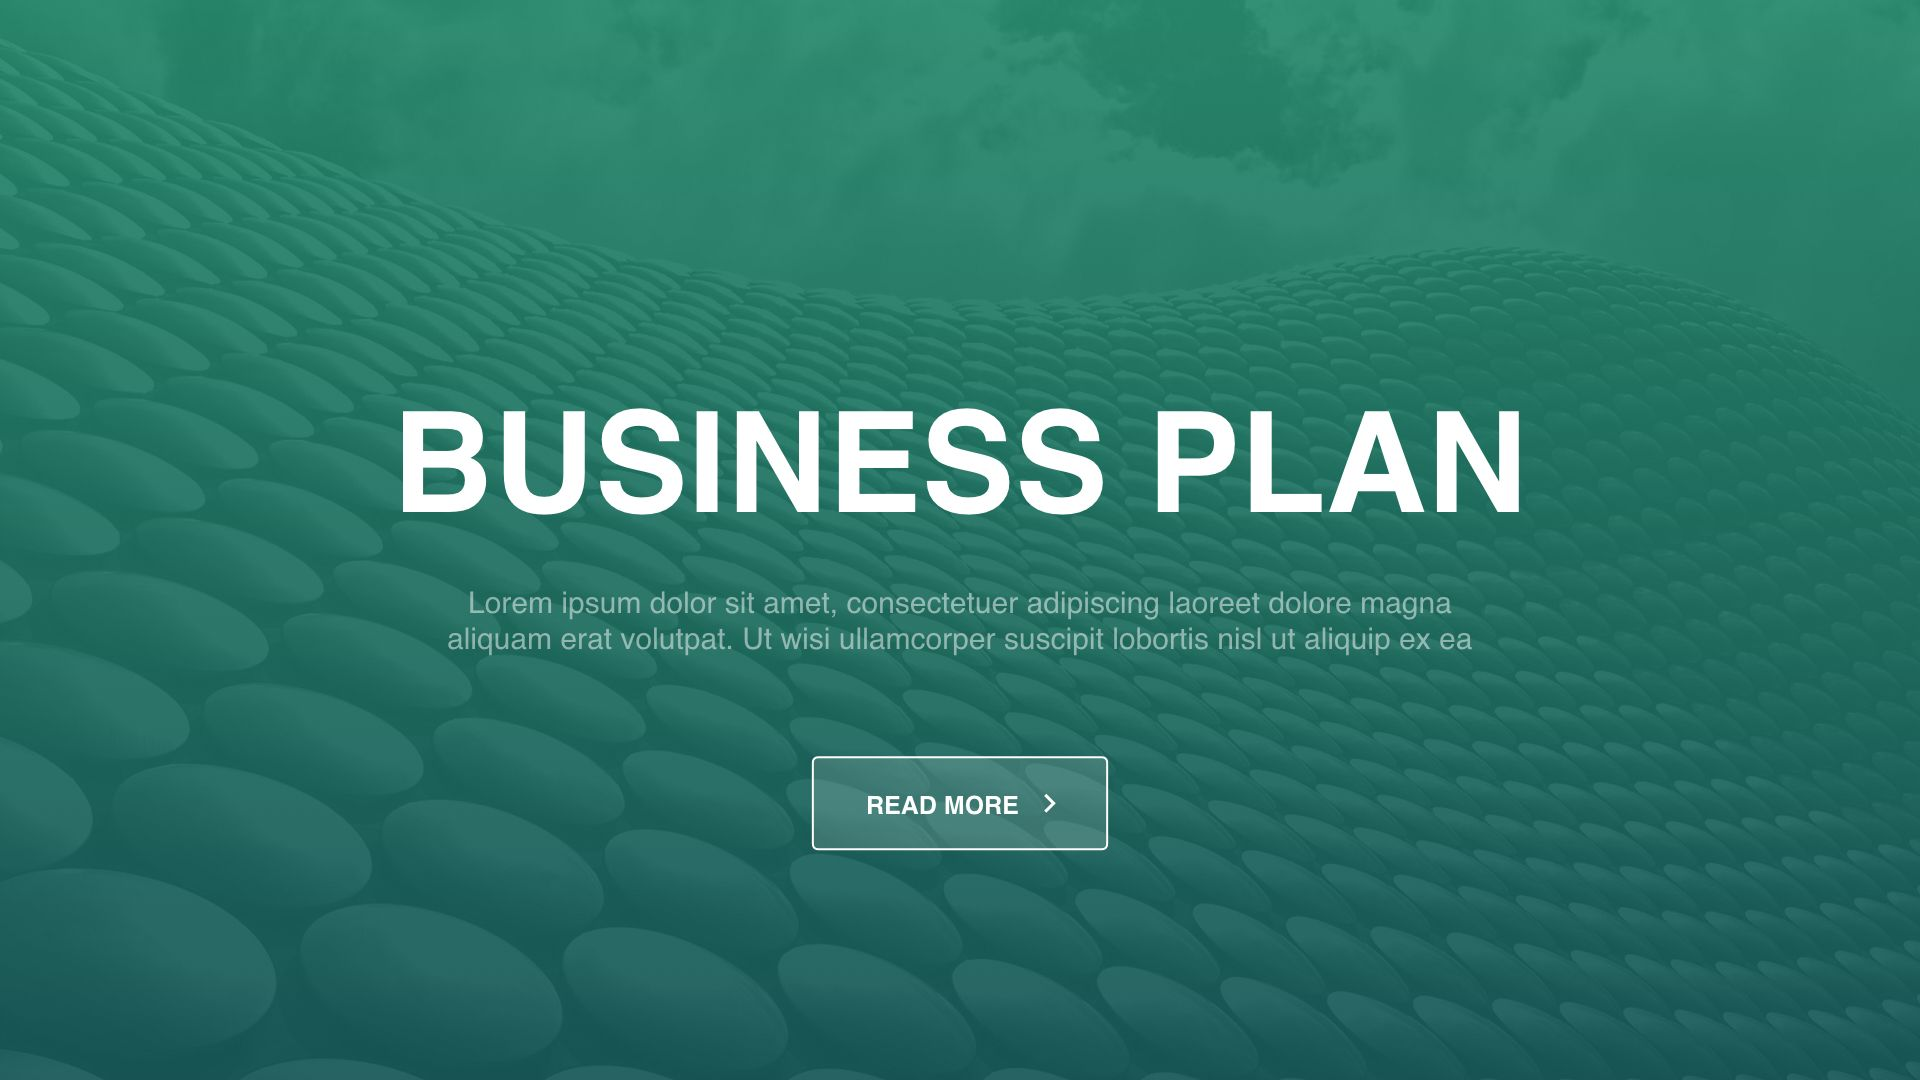 Business Plan Free Keynote Template DOWNLOAD LINK Httpshislide - Business plans free templates